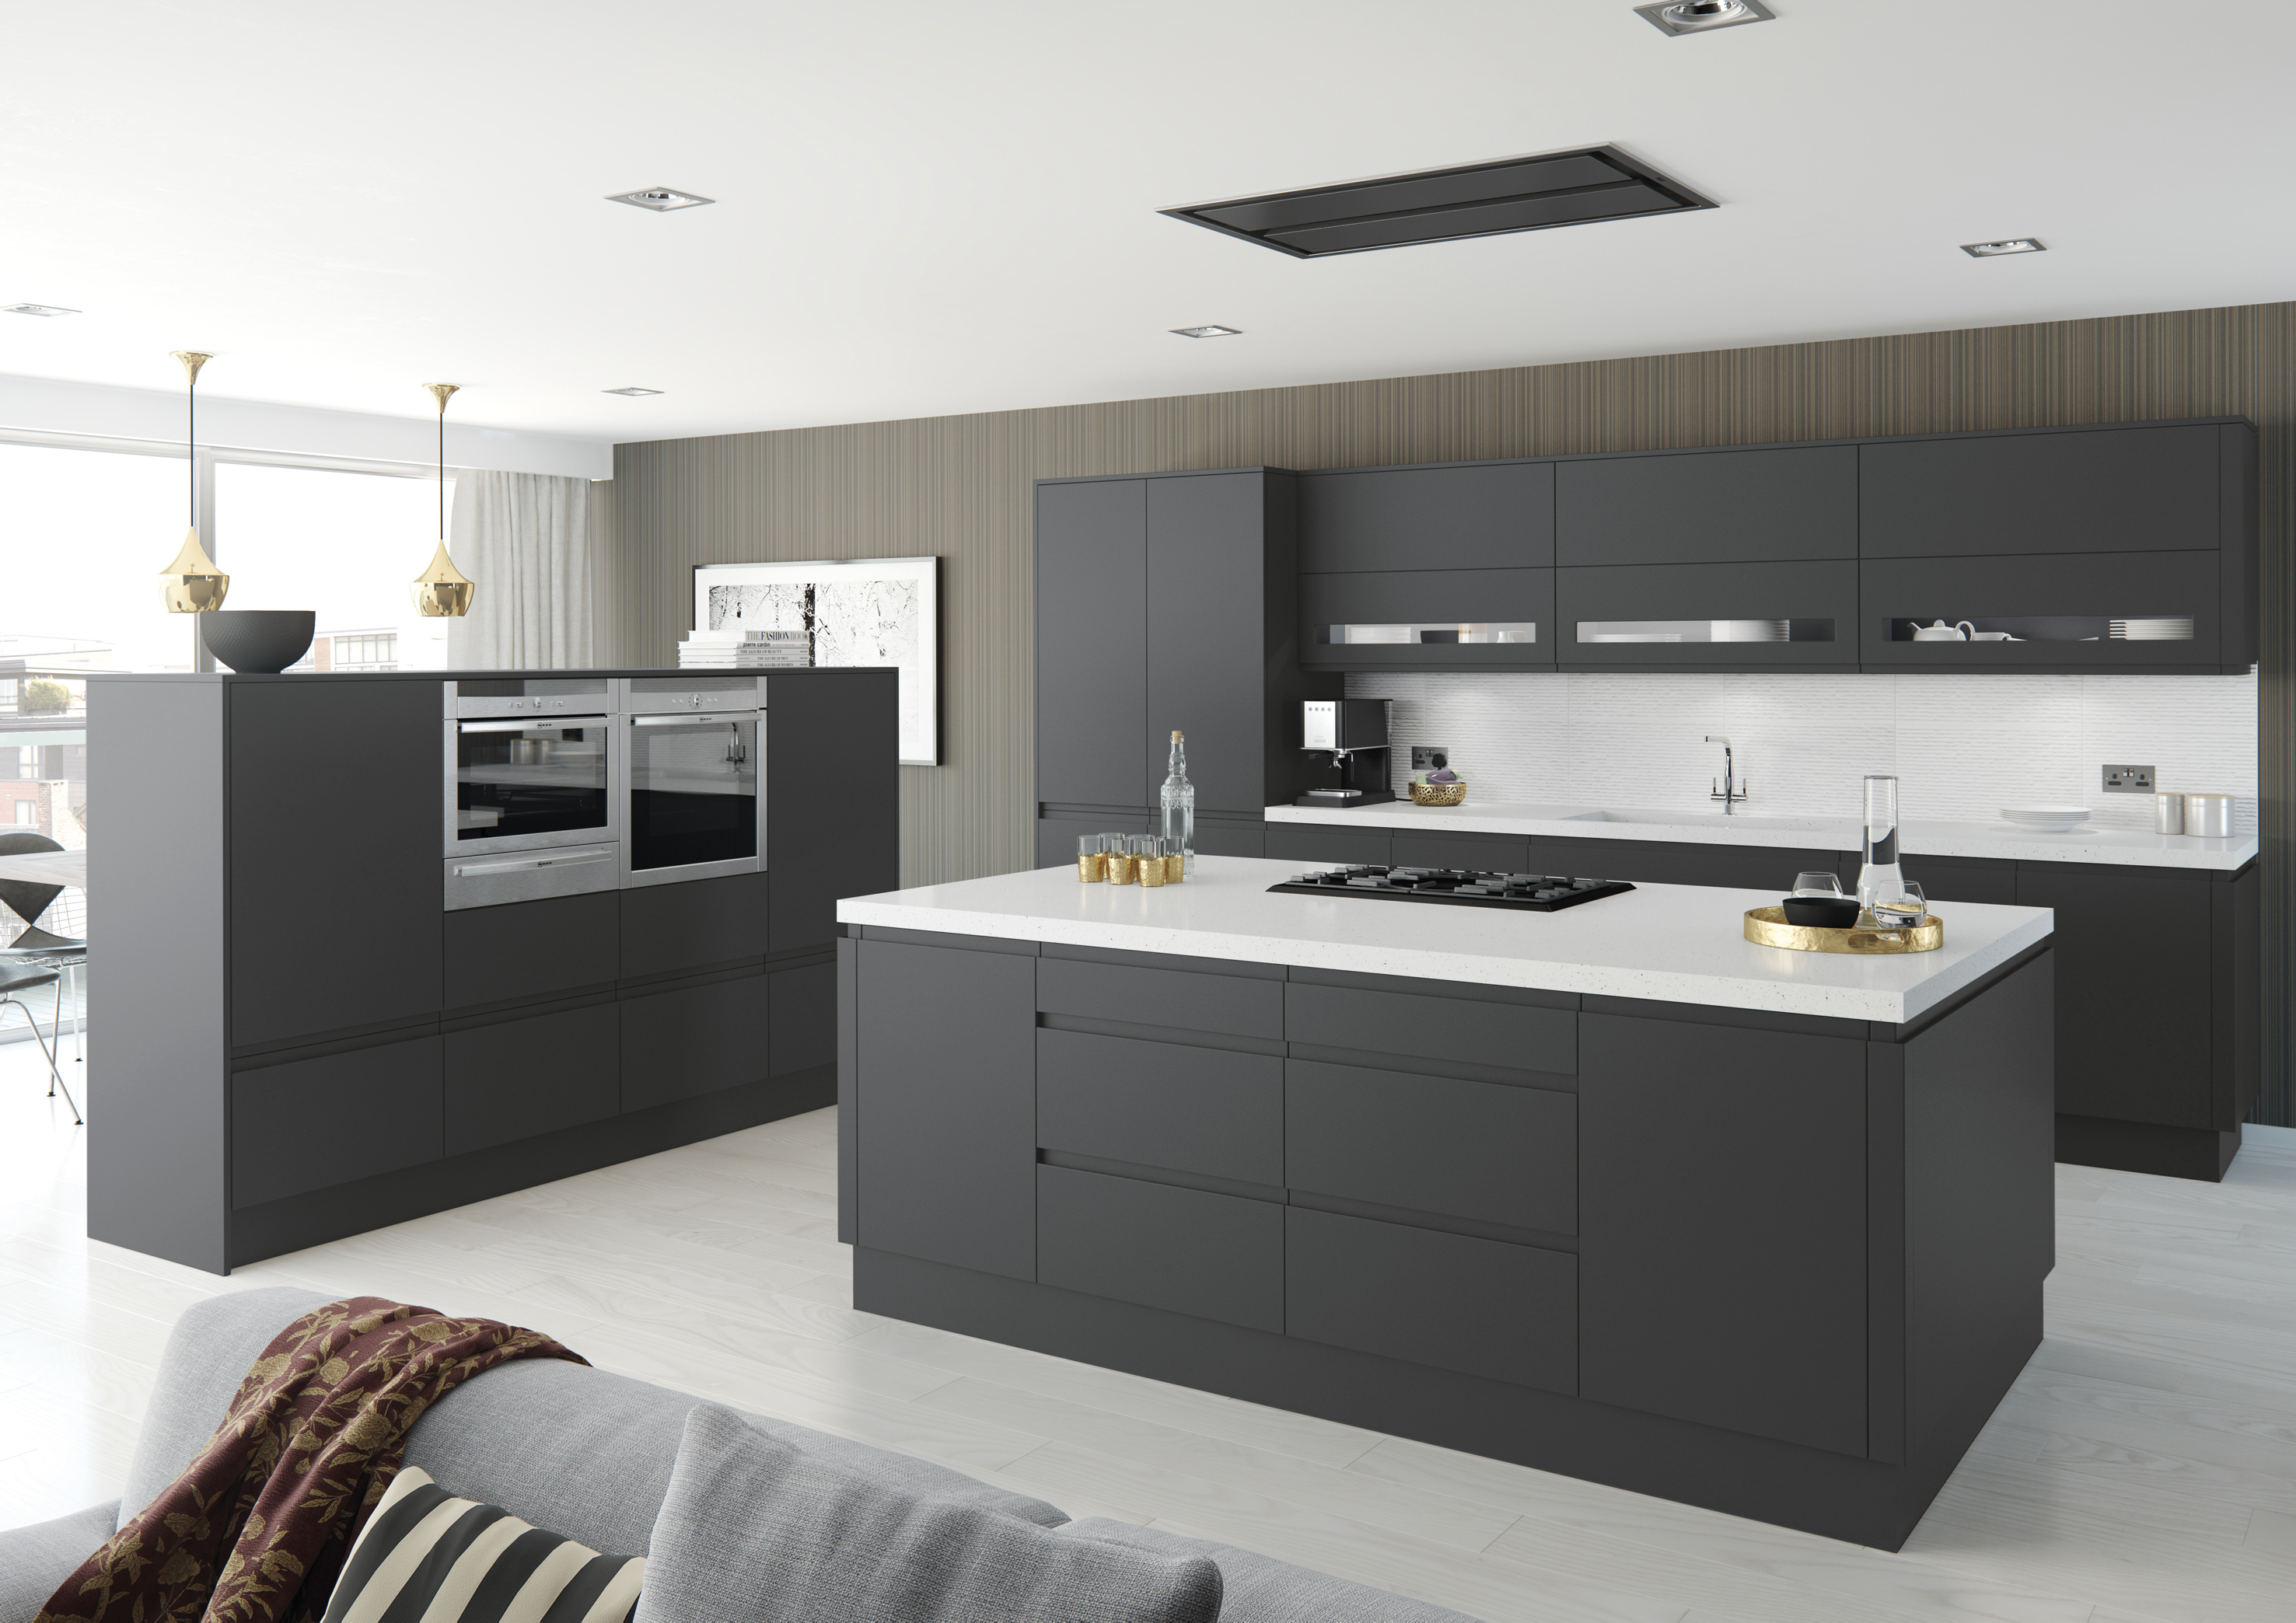 Budget Friendly Ways To Improve Your Kitchen - Dark grey kitchen units